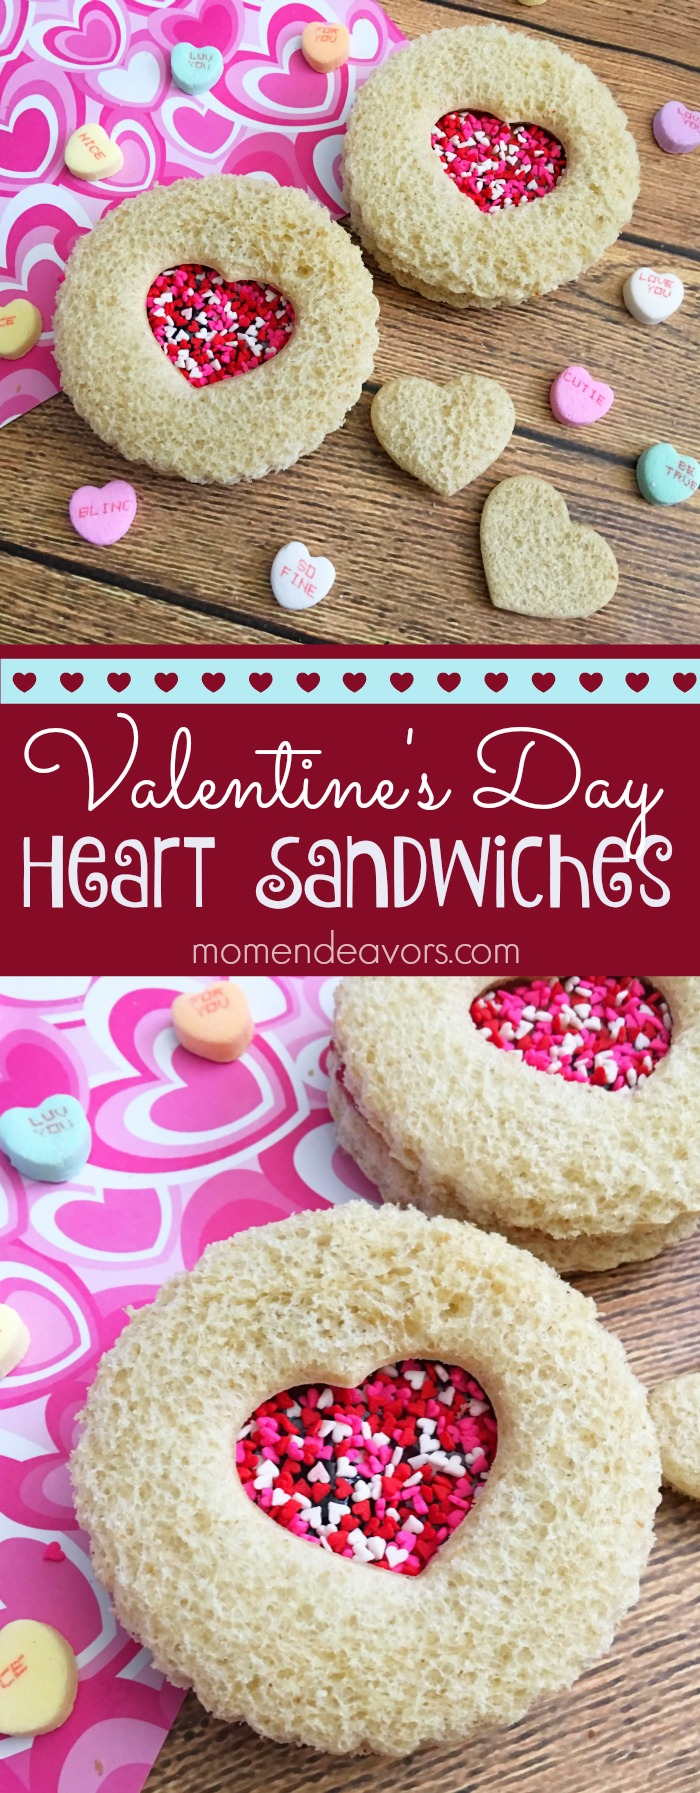 Valentine's Day Heart Sandwiches